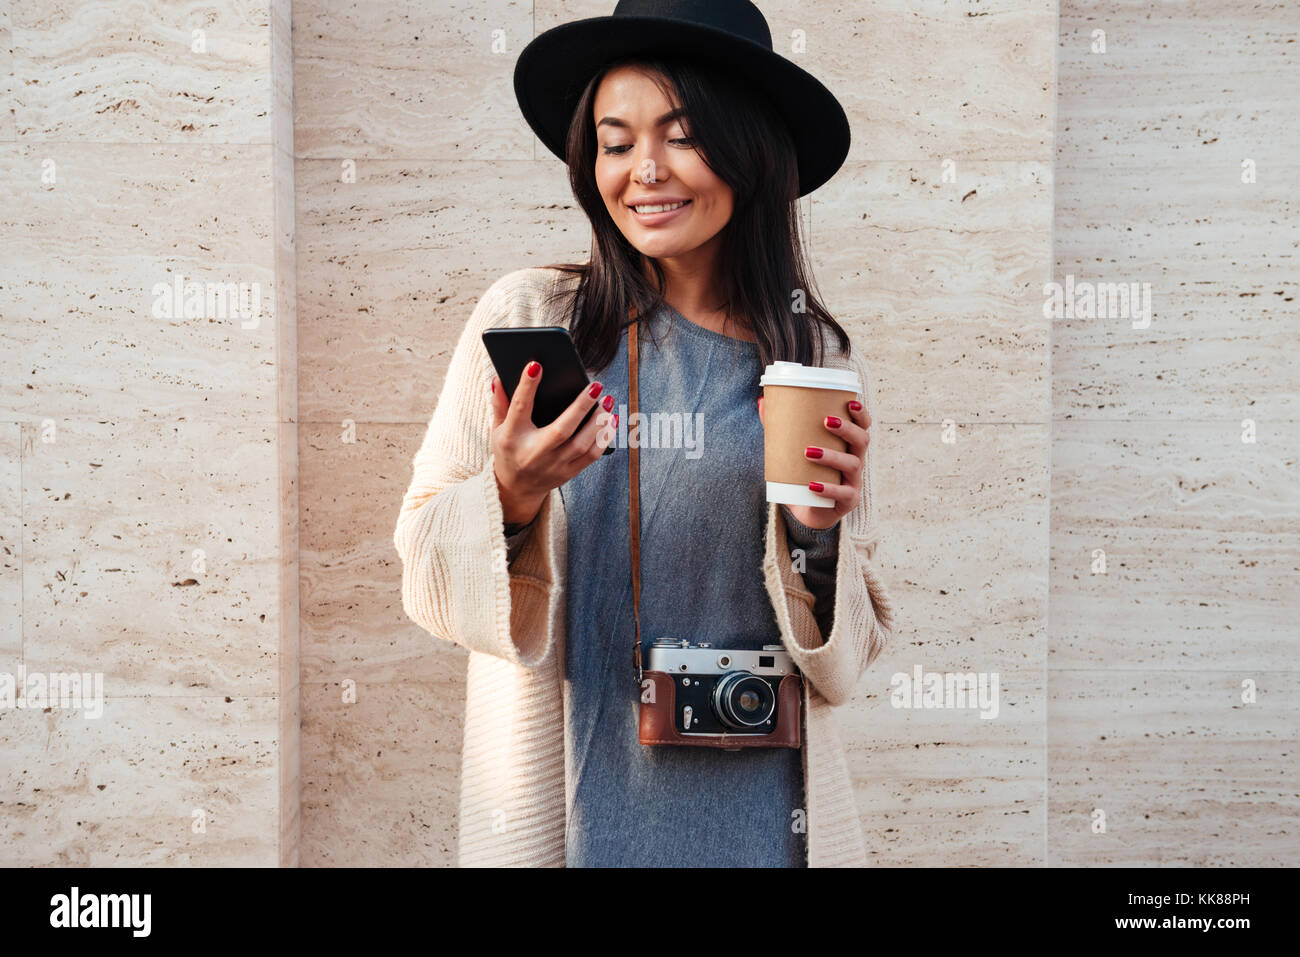 Young stylish asian woman in black hat using mobile phone and holding  coffee cup while standing on street 7da824fea0c